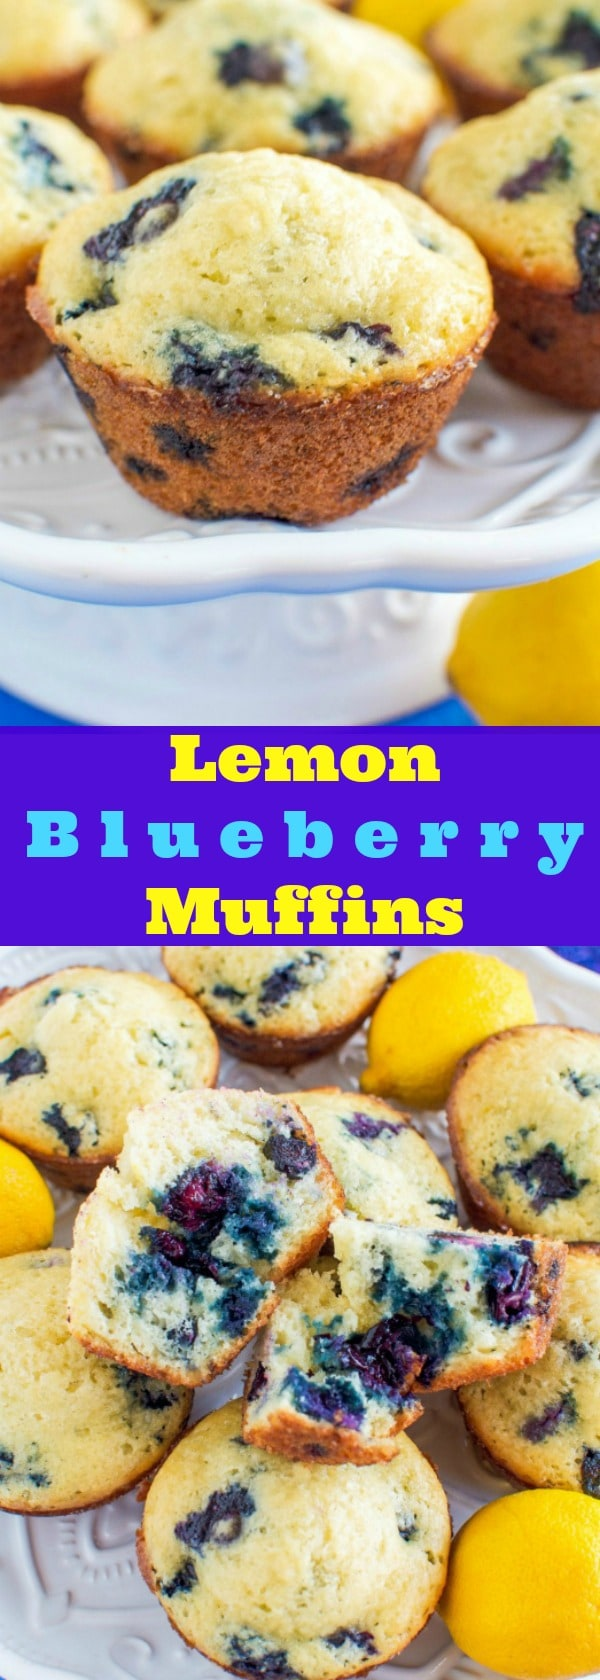 Bakery Style Lemon Blueberry Muffins - Light and fluffy with a sugar crust!